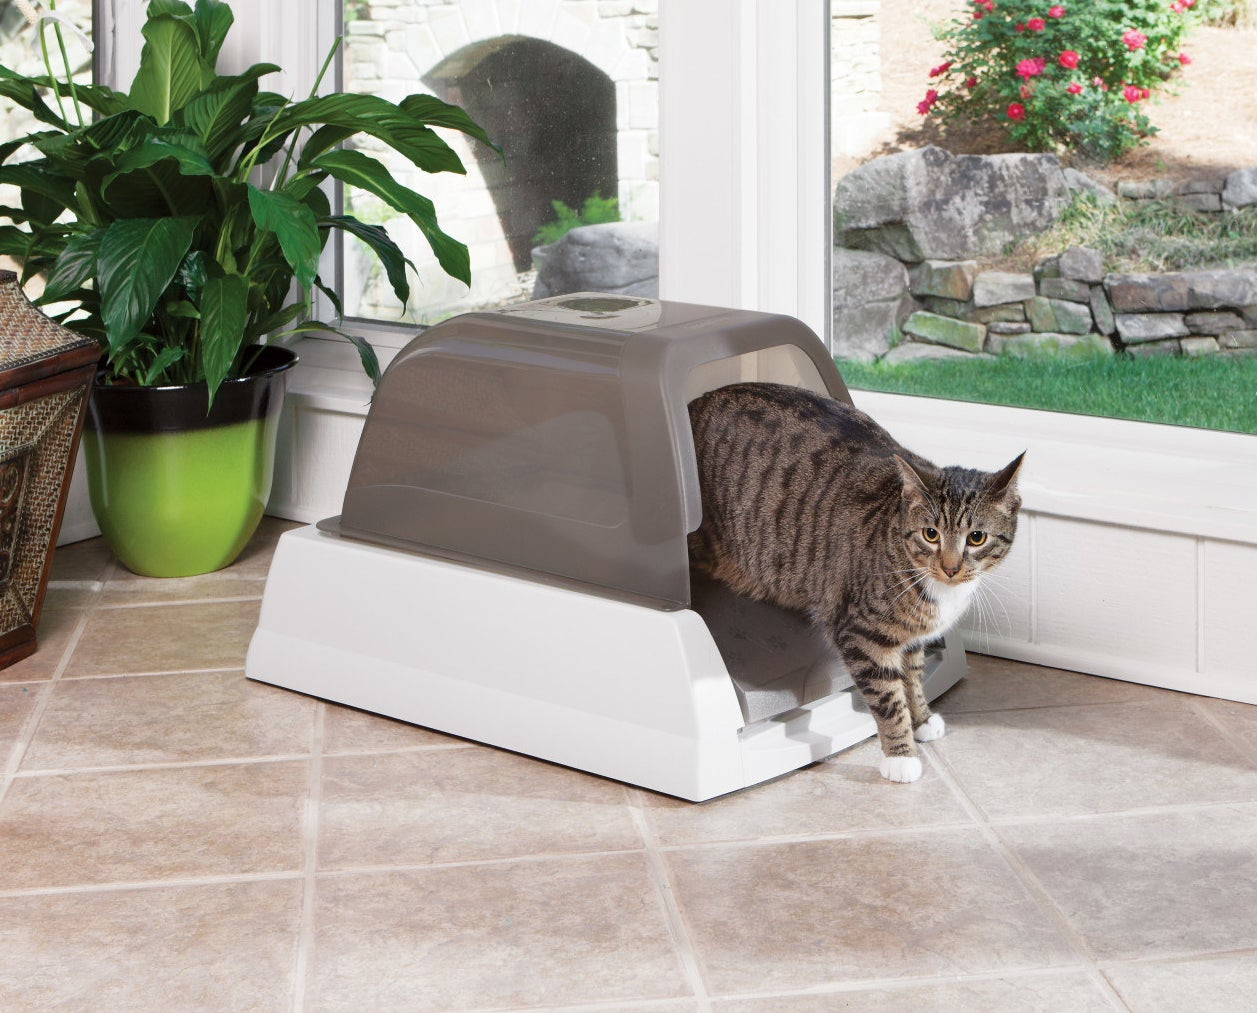 cat coming out of a no scoop litter box